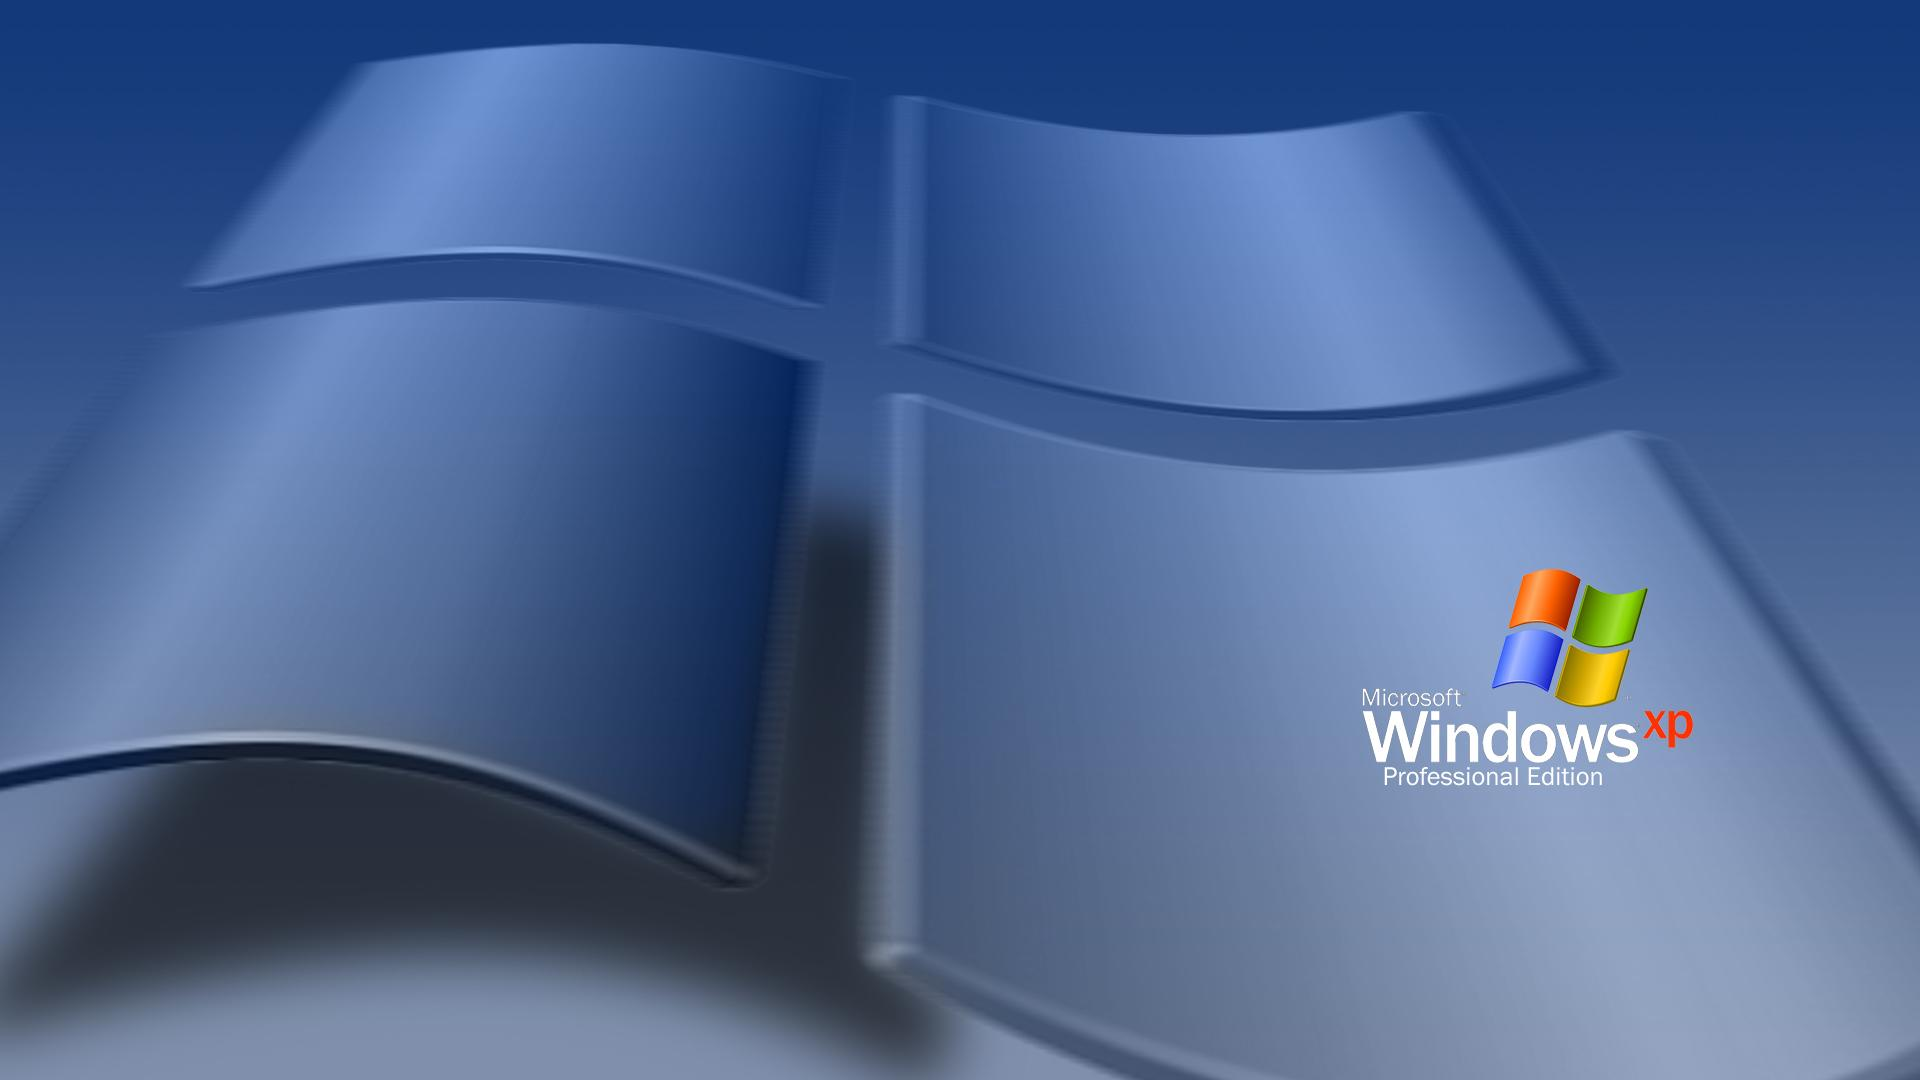 Windowsxp Wallpapers